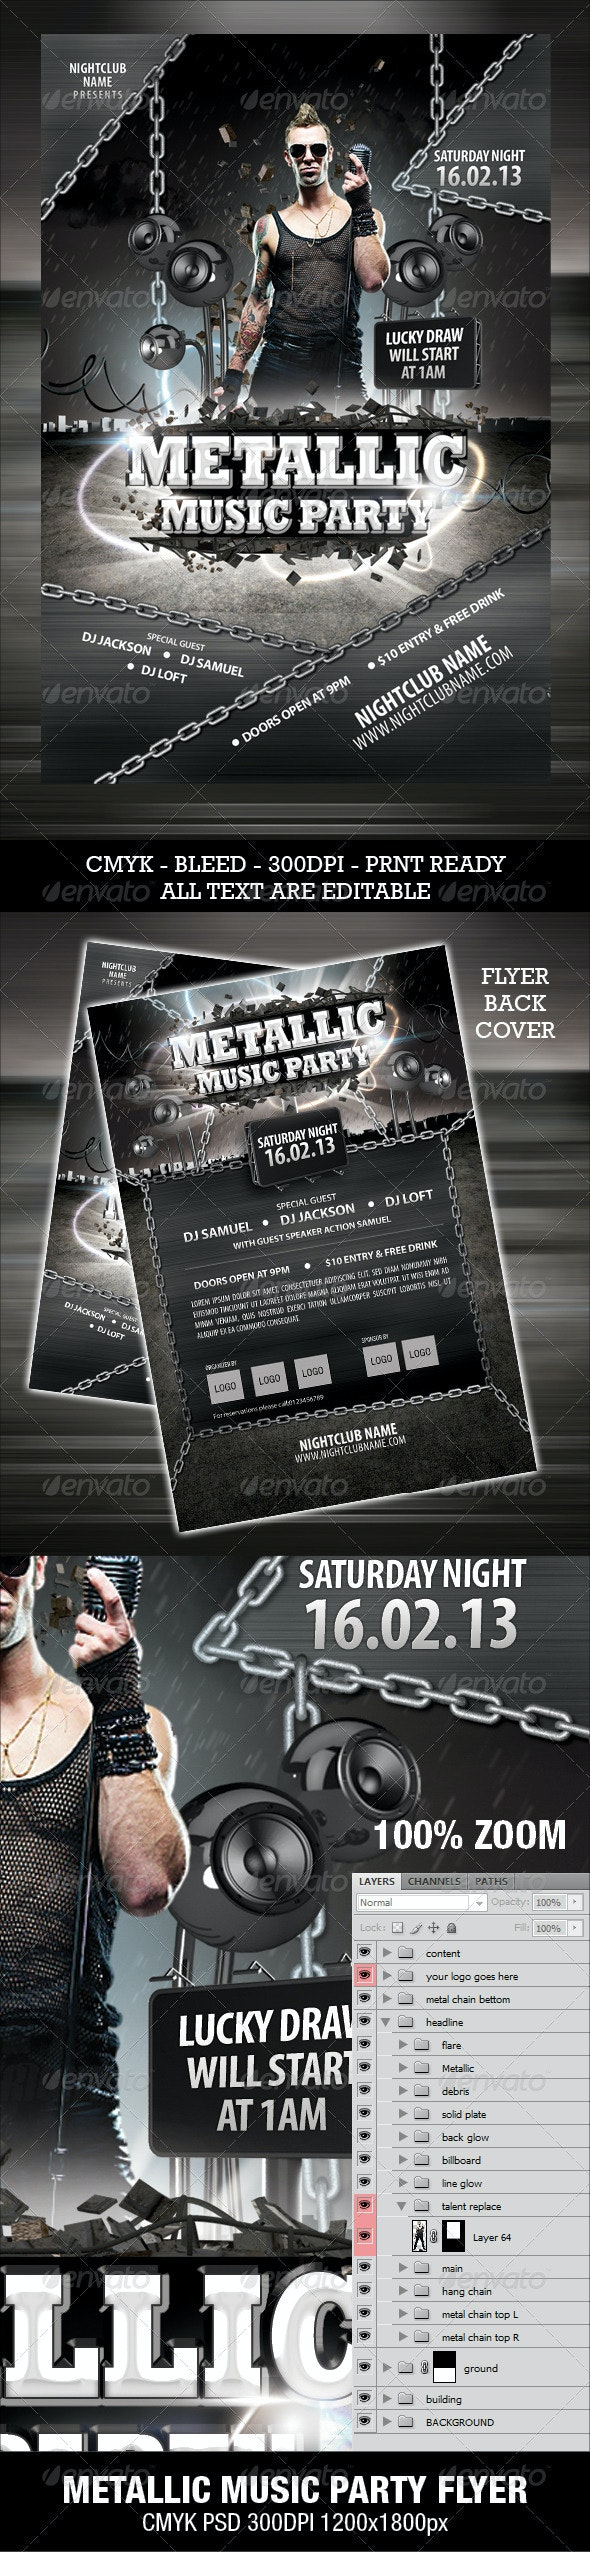 Metallic Music Party Flyer - Clubs & Parties Events